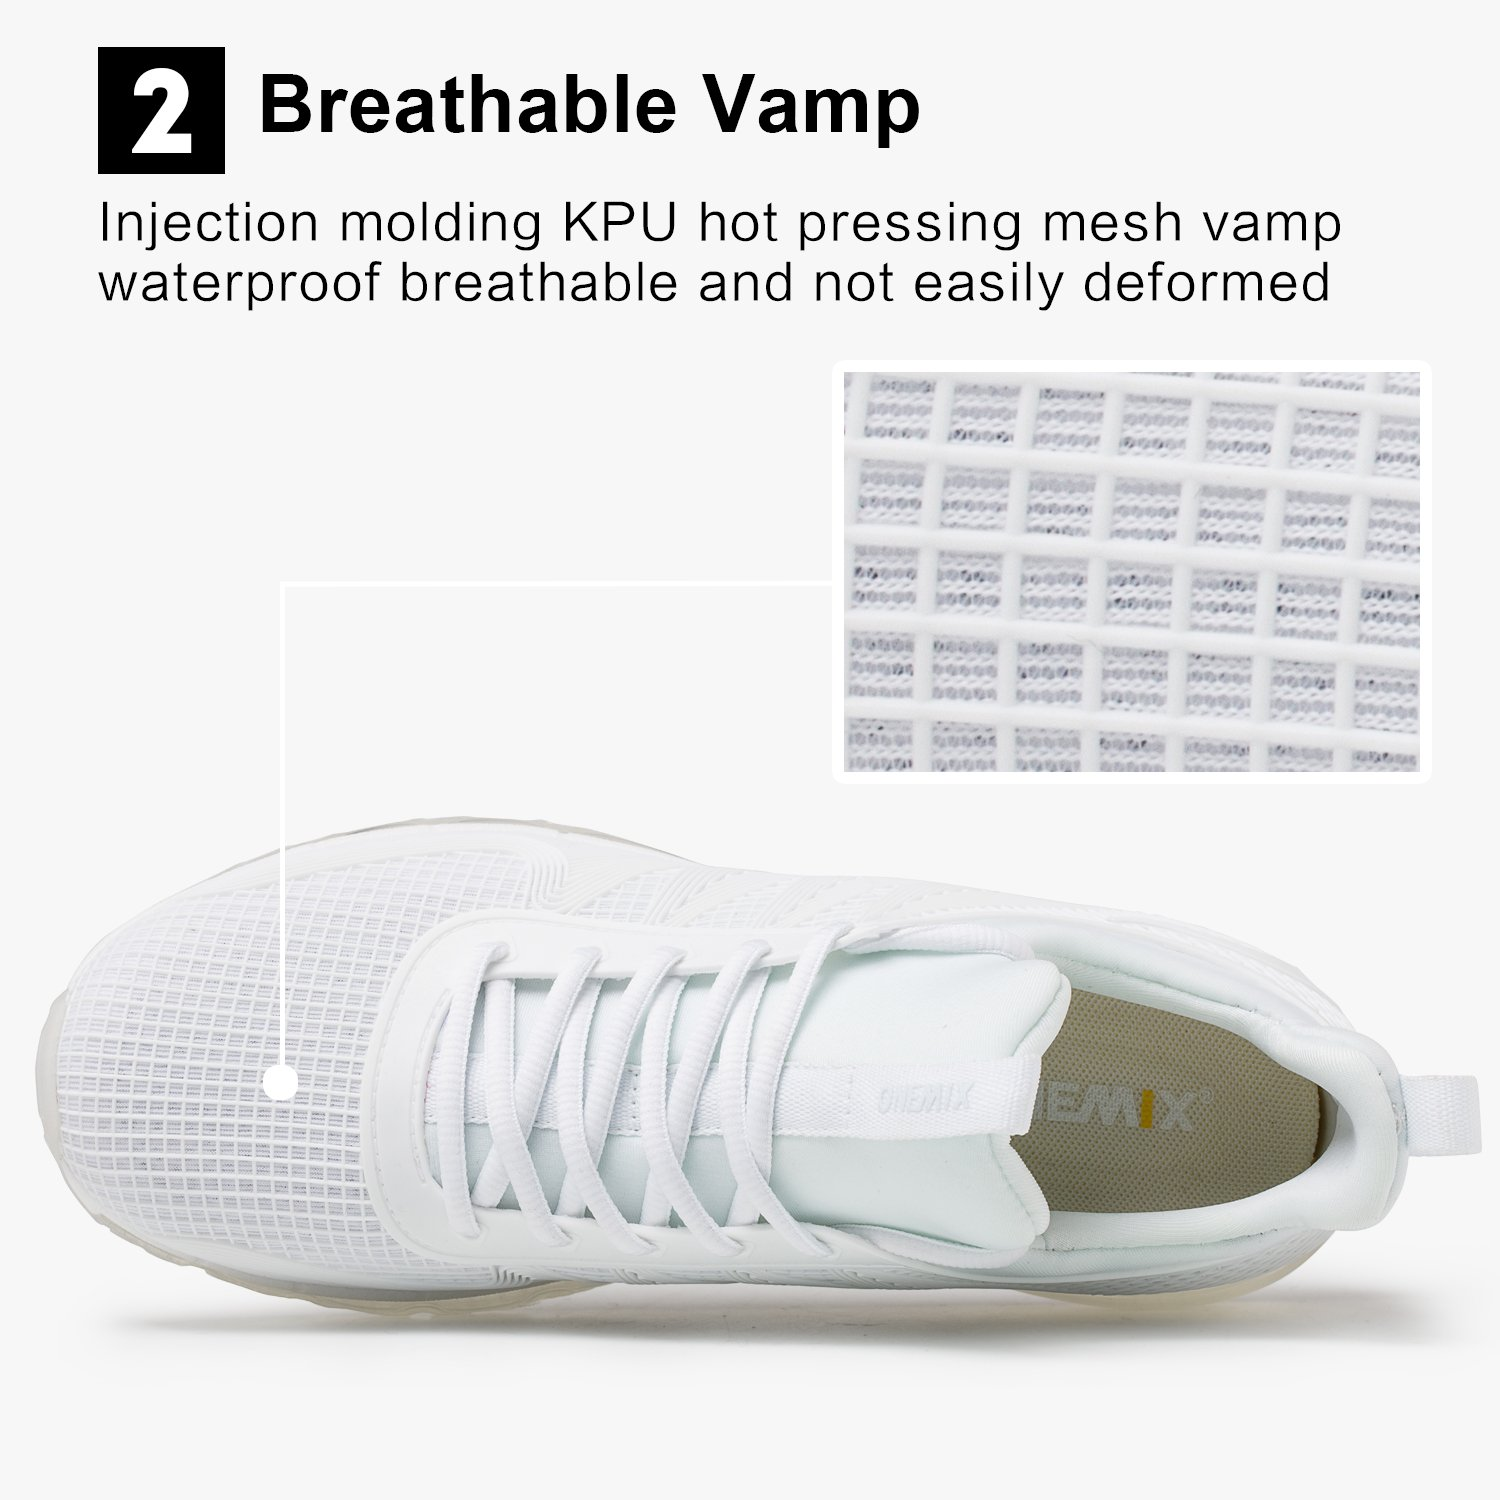 ONEMIX Running Shoes Breathable Air Cushion Sports Shoes Lightweight Outdoor Sneakers for Men and Women B07DZBYT82 Men 12D(M)US=11.41inch|White